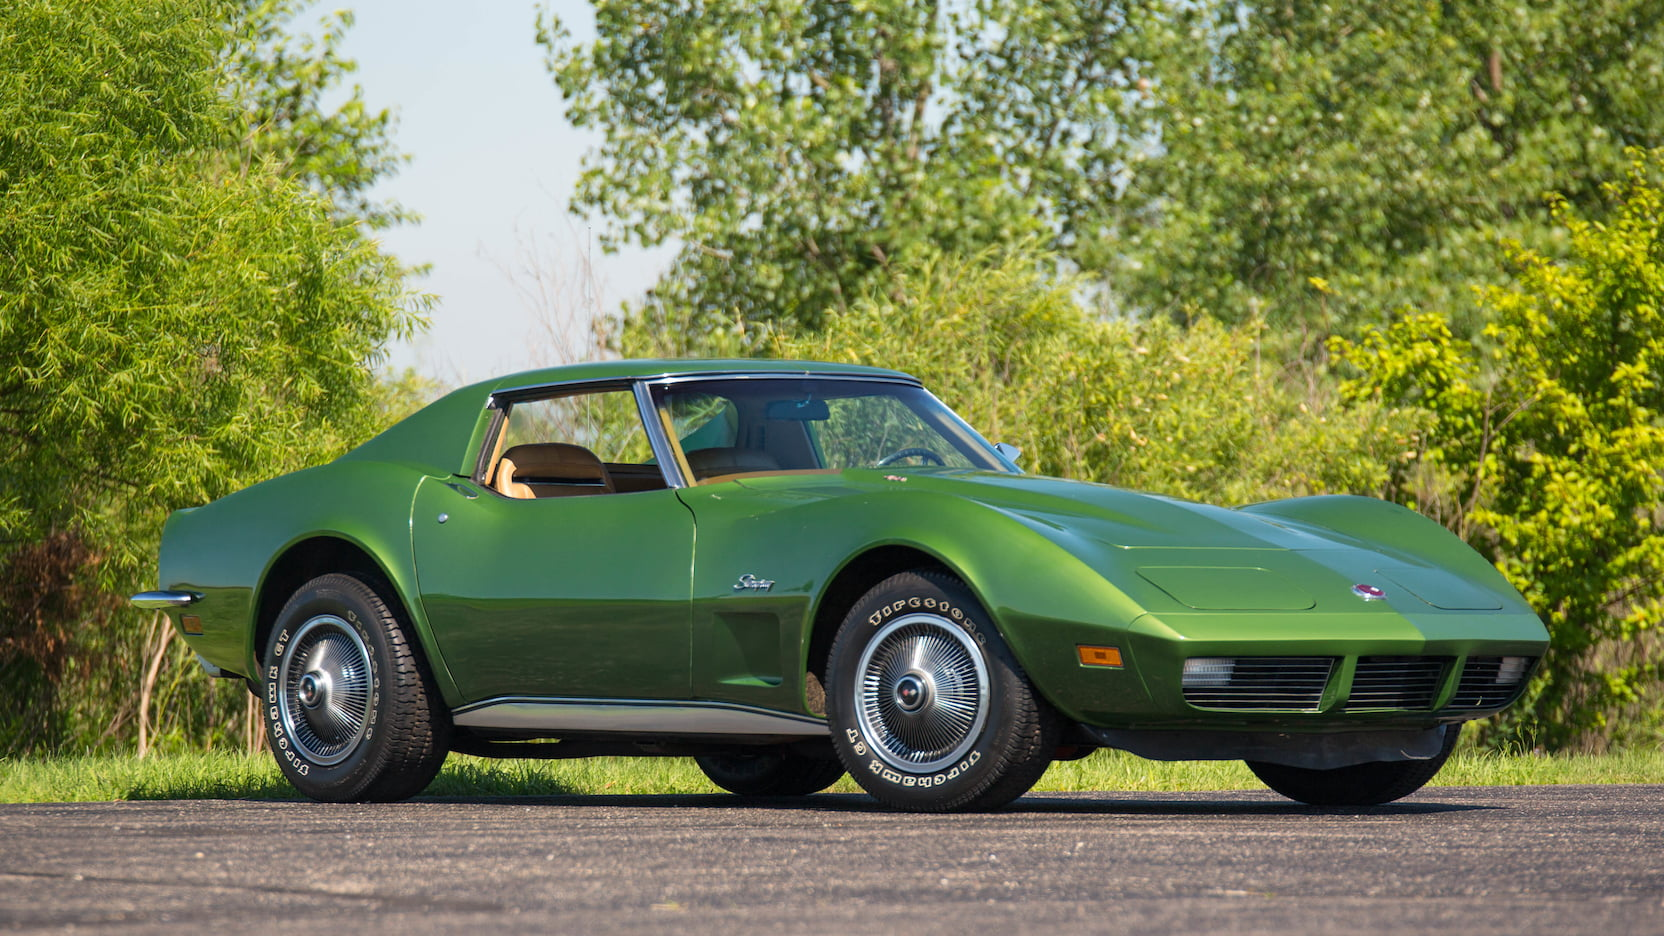 1973 Corvette Coupe green front 3/4